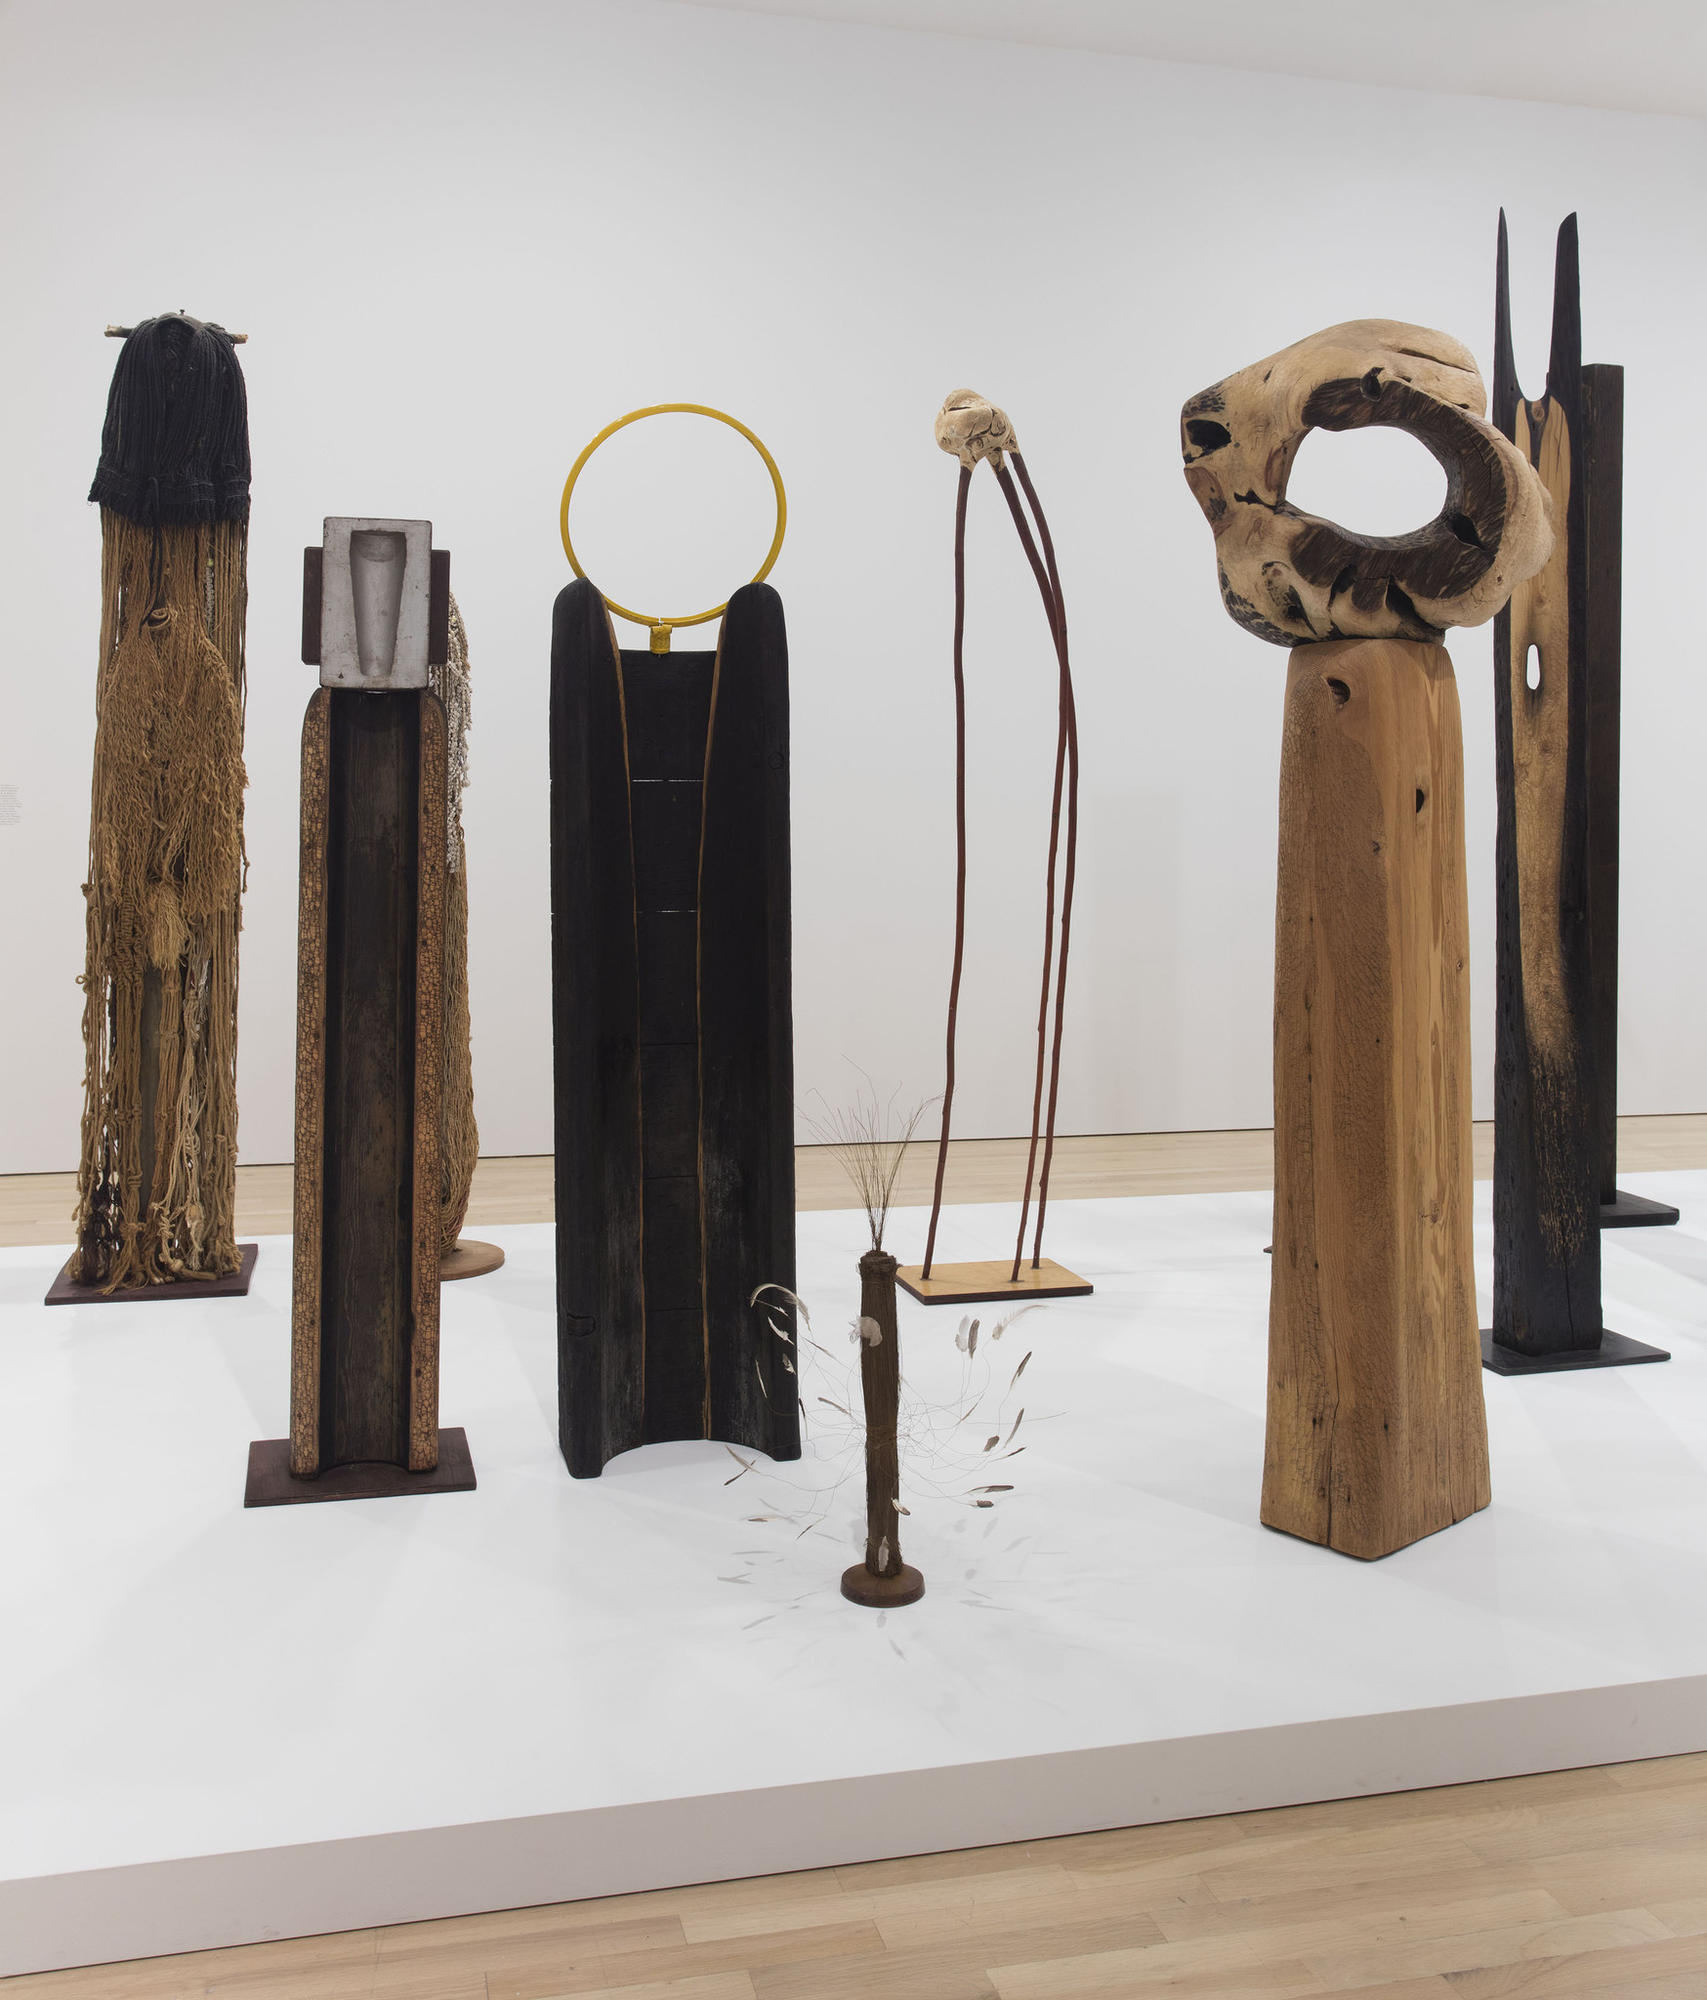 Kenzi Shiokava, installation view of mixed-media totem sculptures